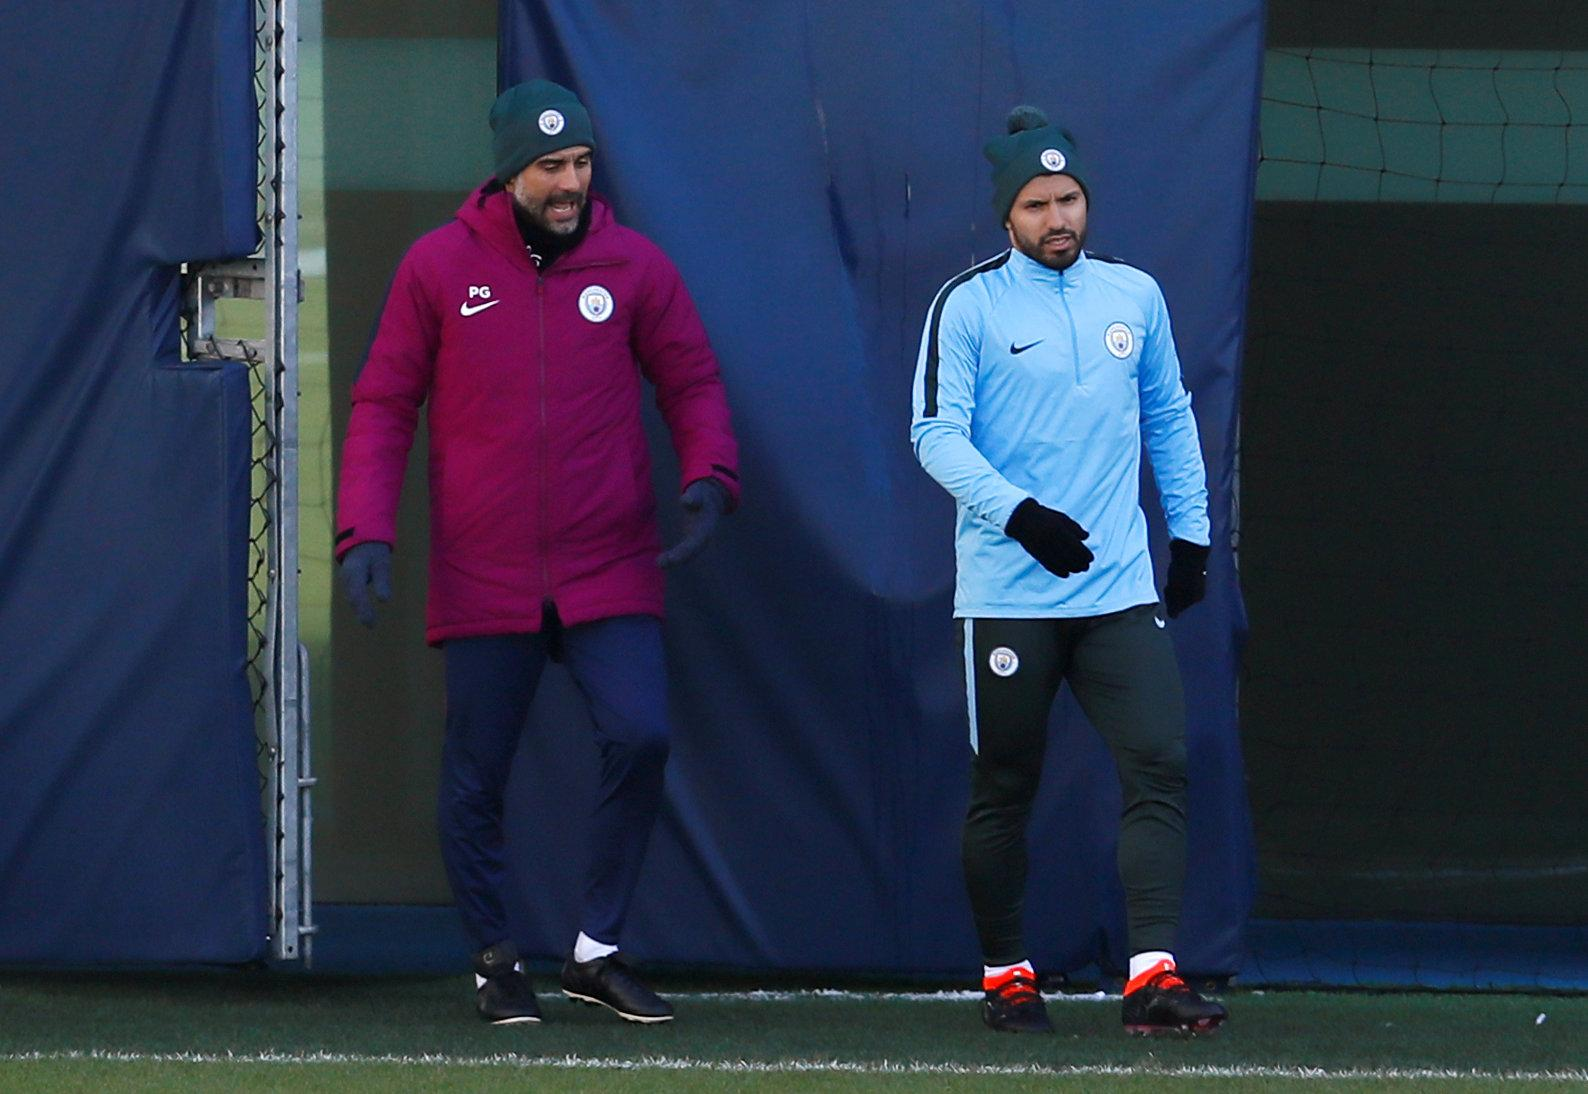 Of course Pep thinks Aguero's fantastic but that may not be enough